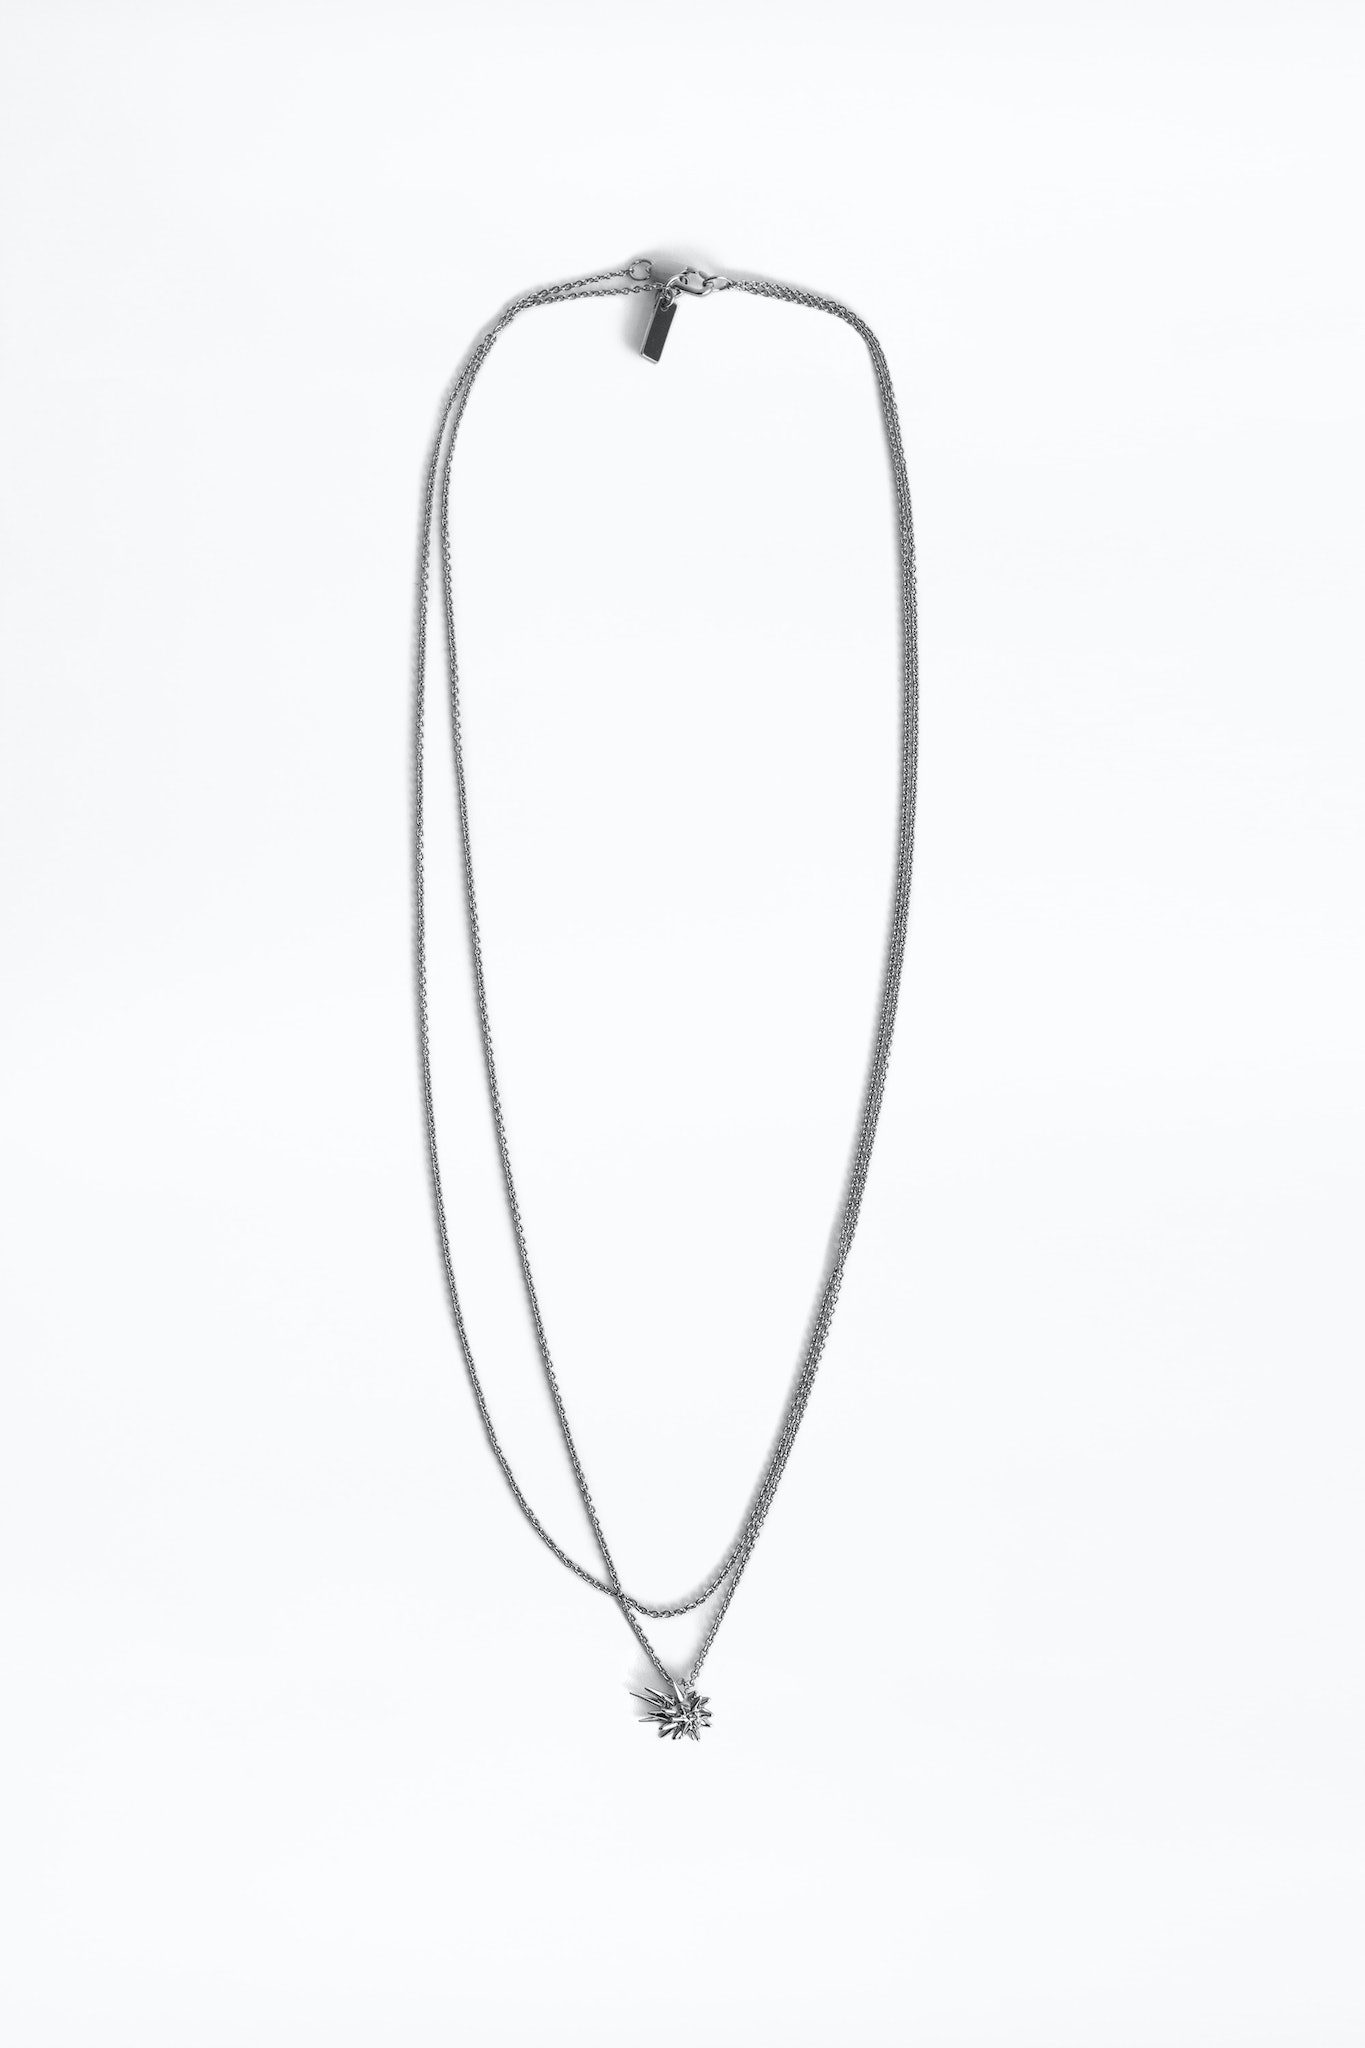 ZV x Cécil Comet Necklace